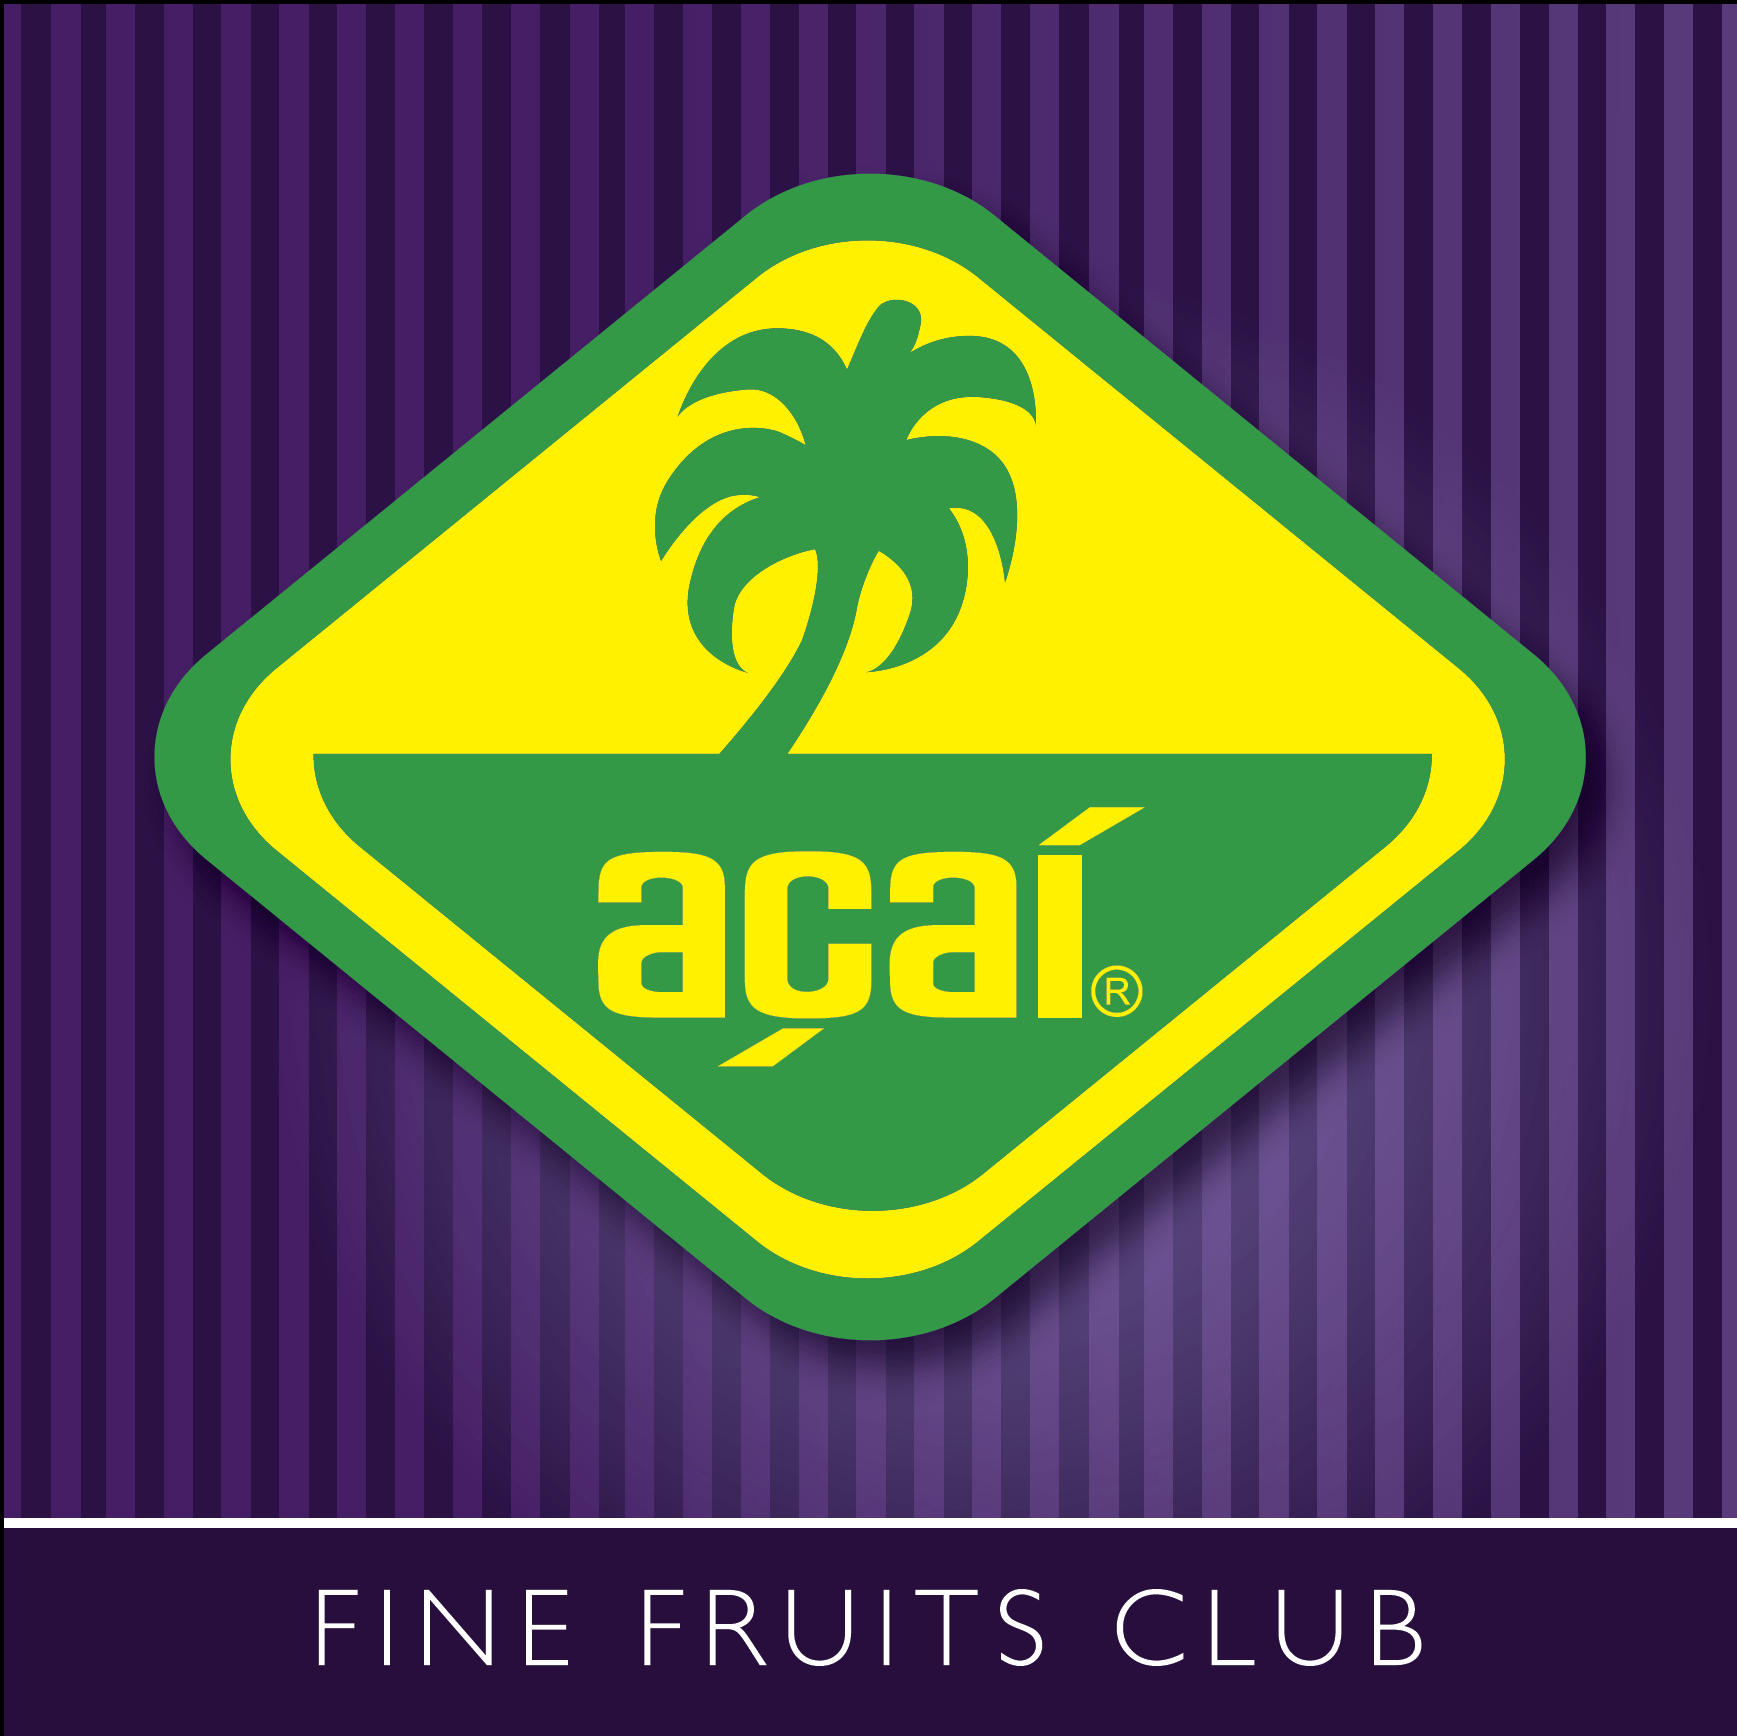 Acai fine fruits club logo